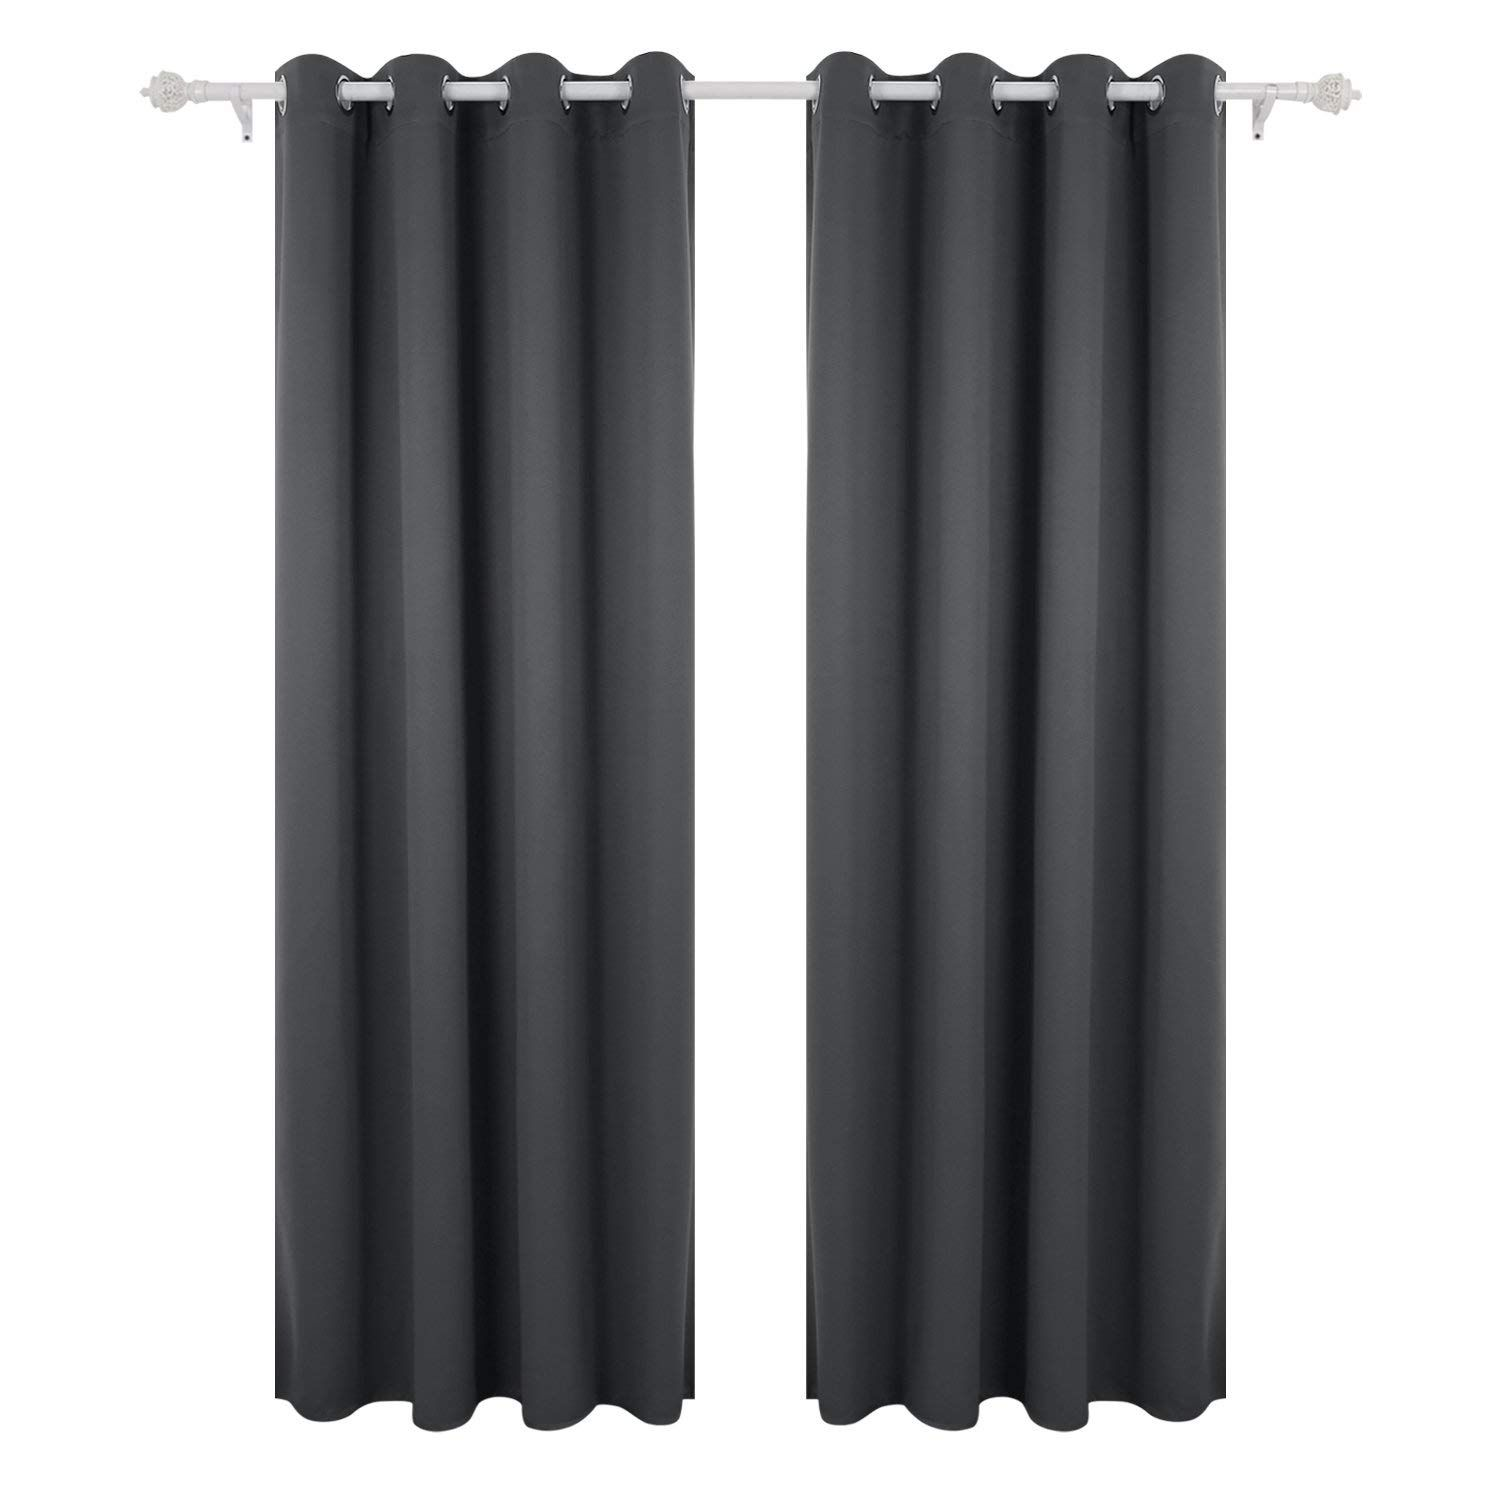 Deconovo Super Soft Thermal Insulated Eyelet Blackout Curtains For Bedroom Wi Insulated Blackout Curtains Thermal Insulated Blackout Curtains Blackout Curtains